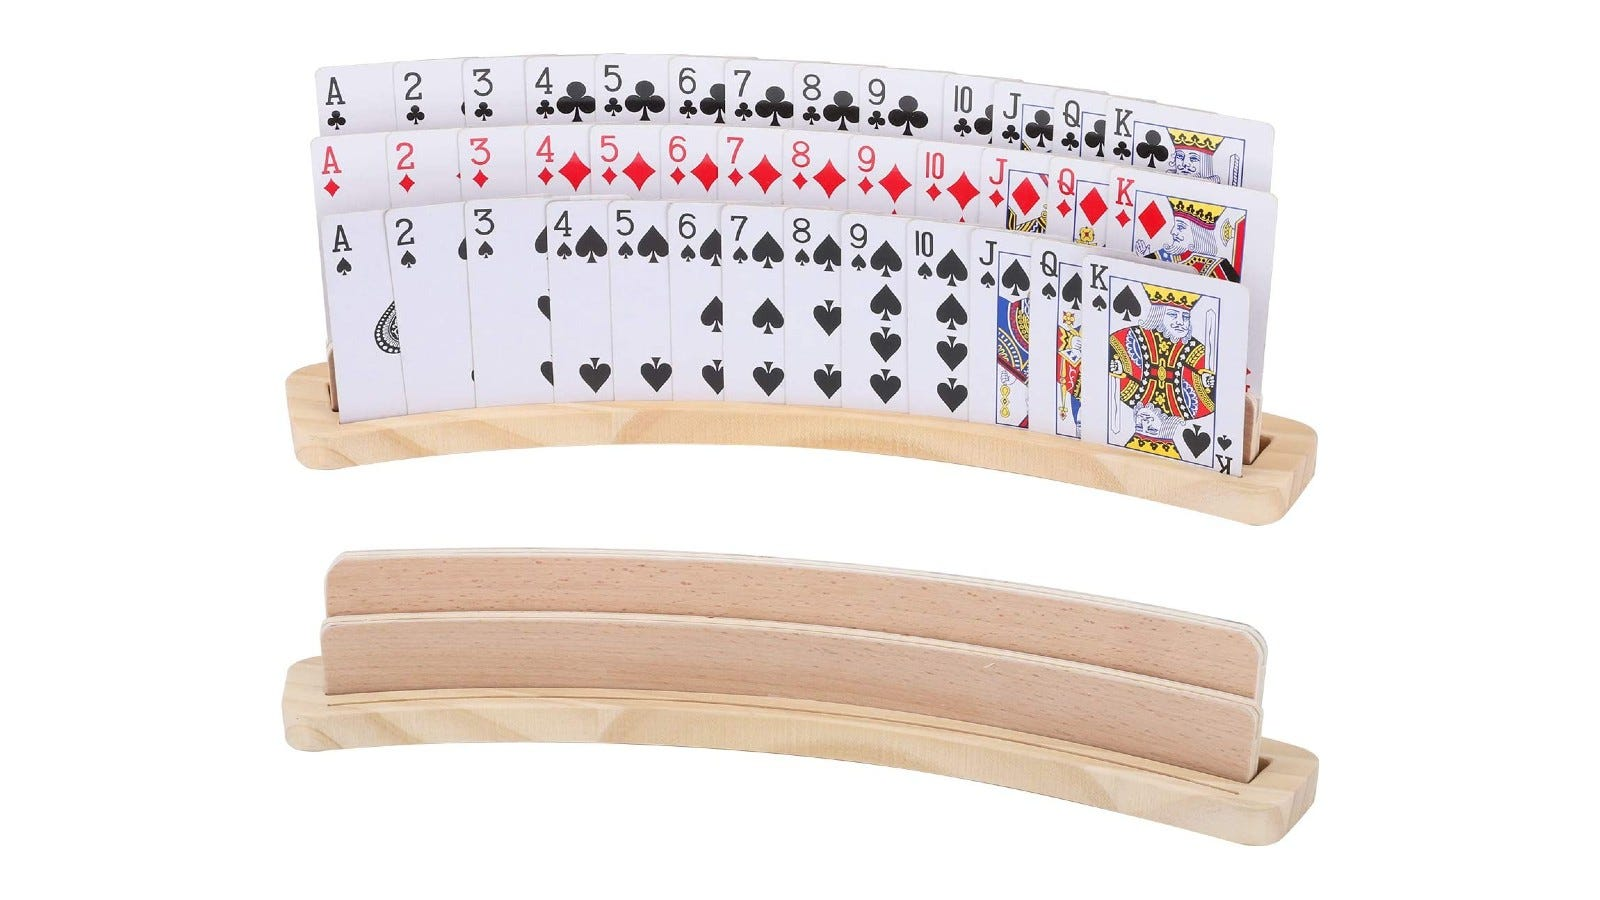 A large playing card holder made of wood and holding three suits of face cards